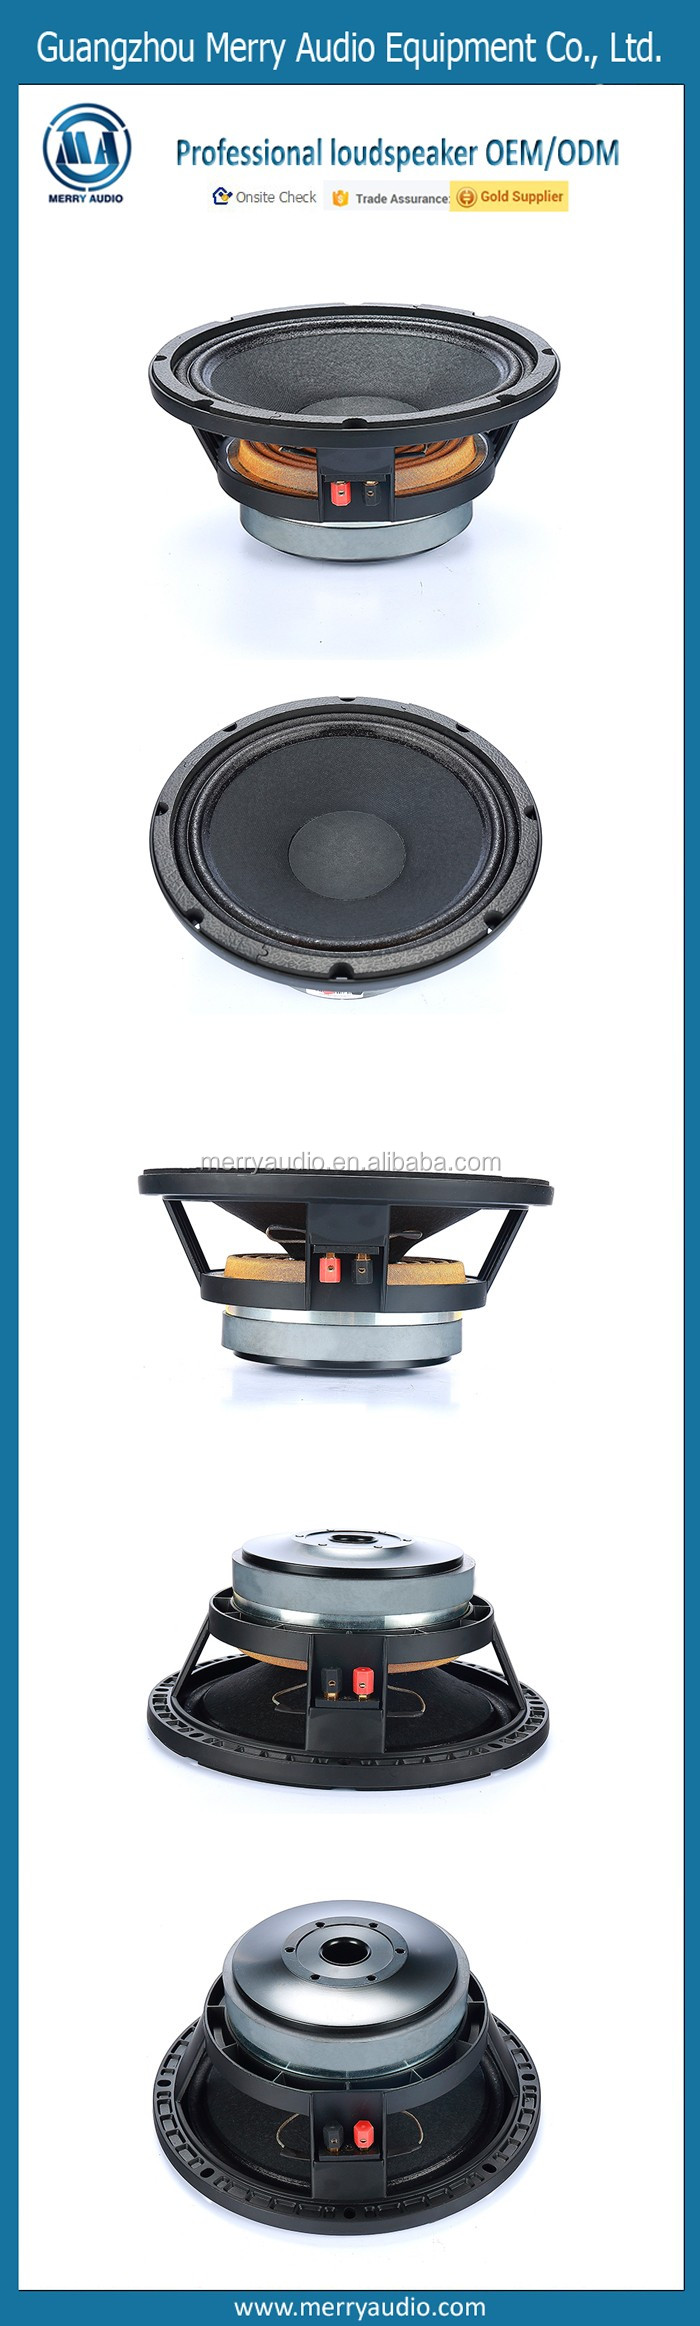 Harga Speaker Rcf Design Professionl Full Range Line Array 10